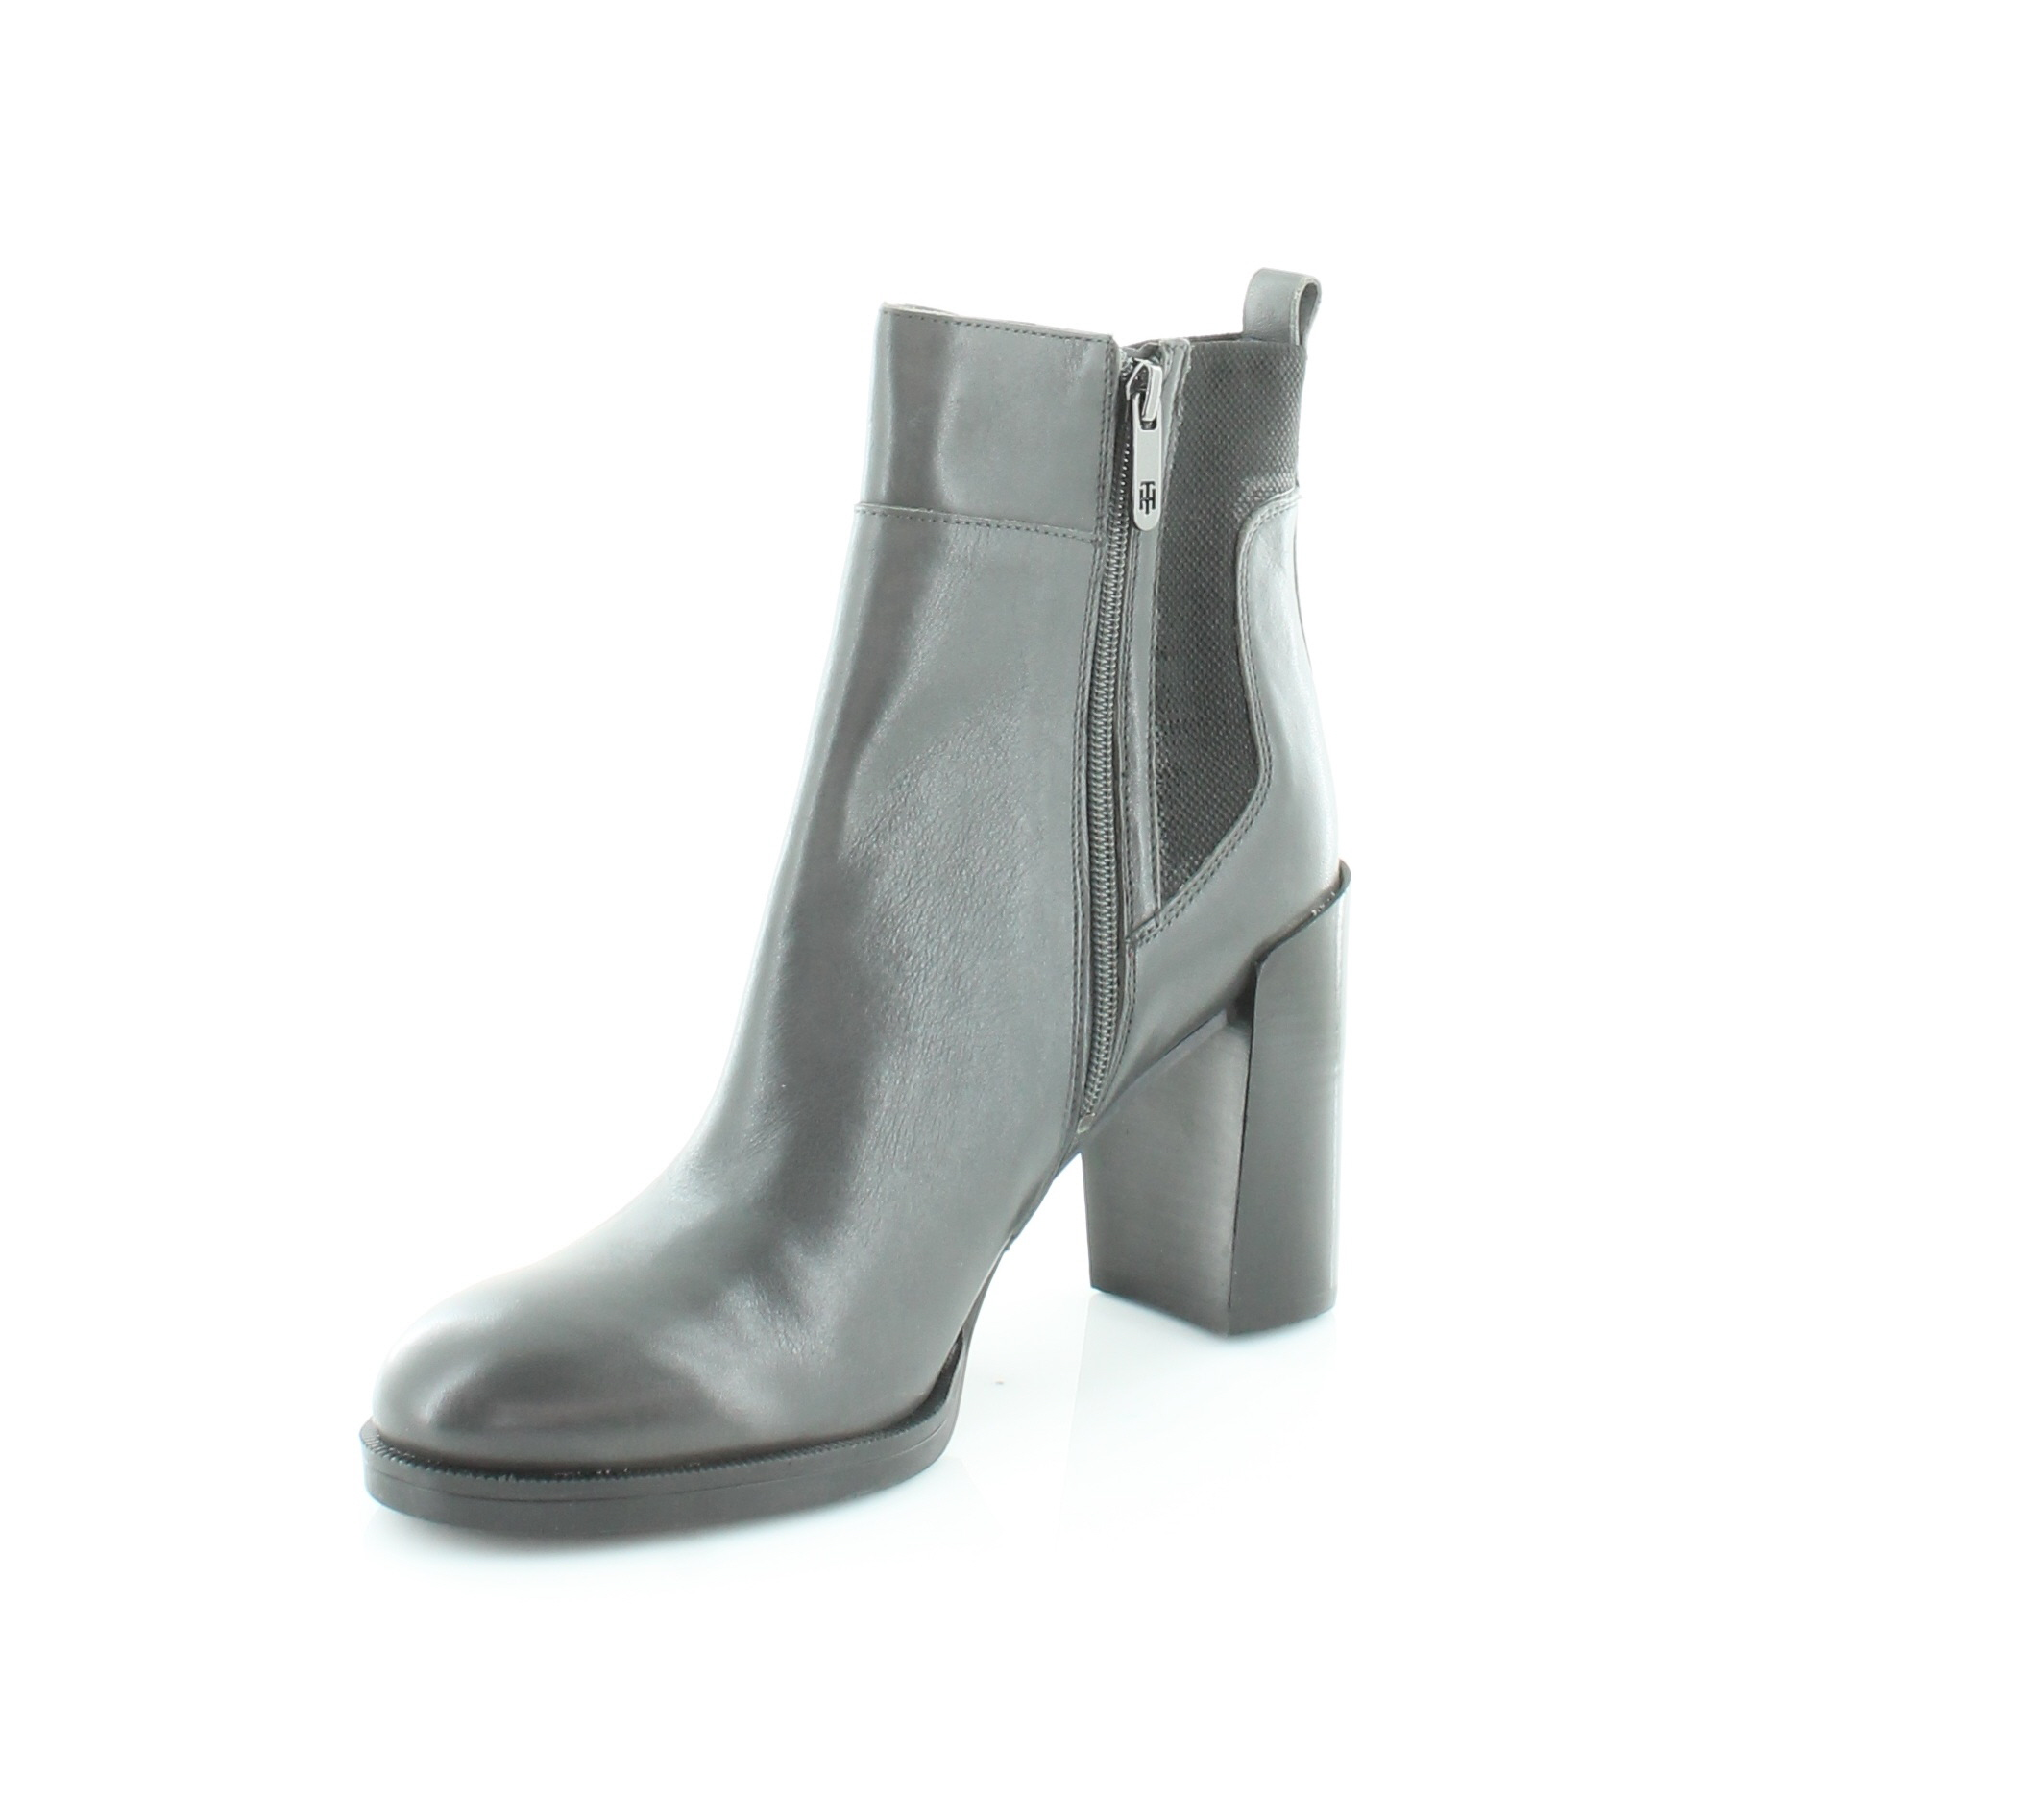 0f2e14776 Tommy Hilfiger Britton Block Heel Ankle BOOTS - Dark Grey 9.5 M US. Be the  first to write a review. About this product. Picture 1 of 5  Picture 2 of 5  ...